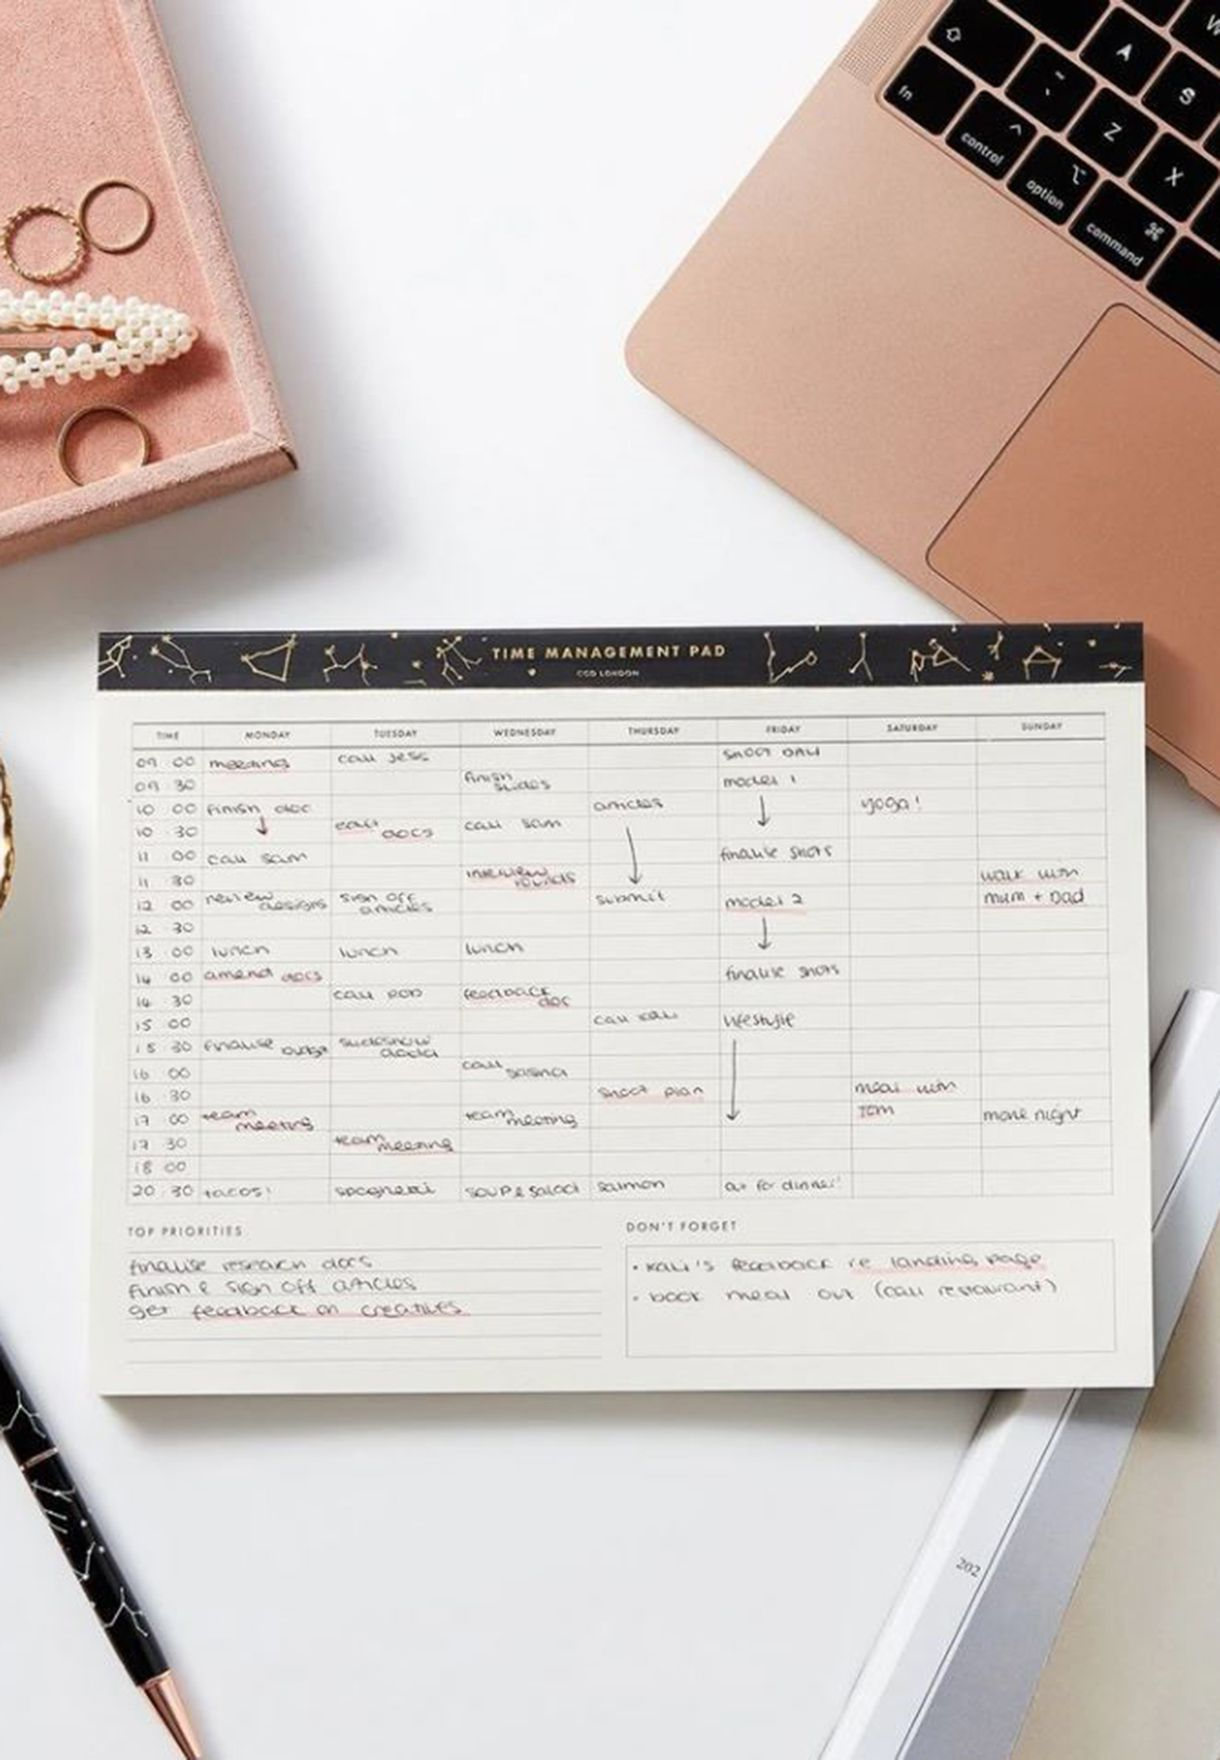 Time Management Pad